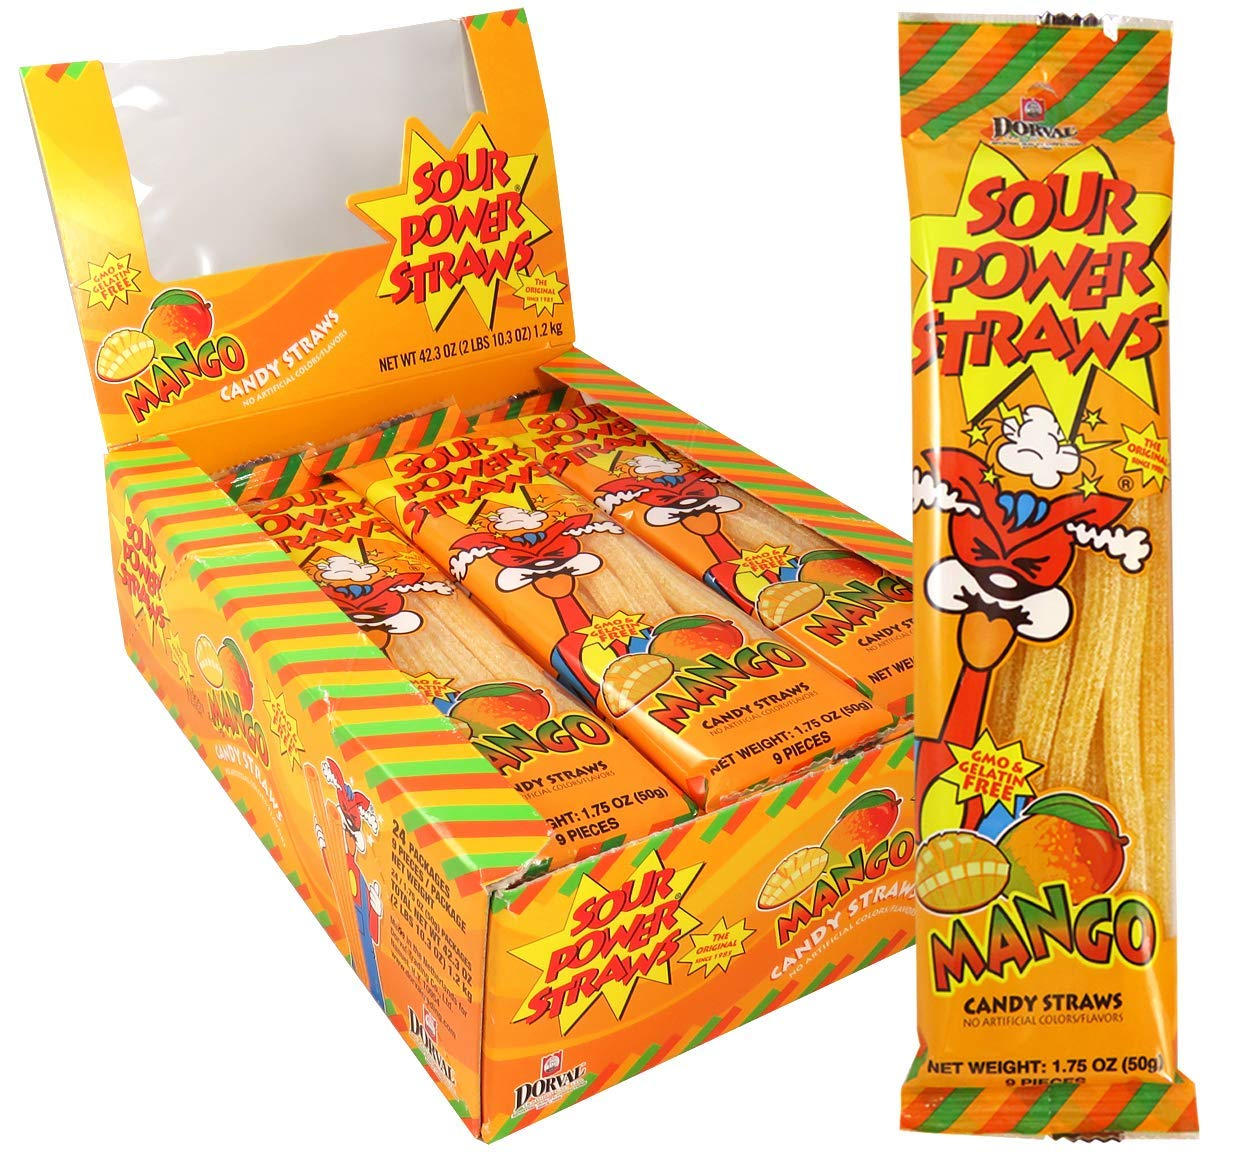 Dorval Sour Power Mango Candy Straws, 1.75 Ounce - Display Box of 24 Count